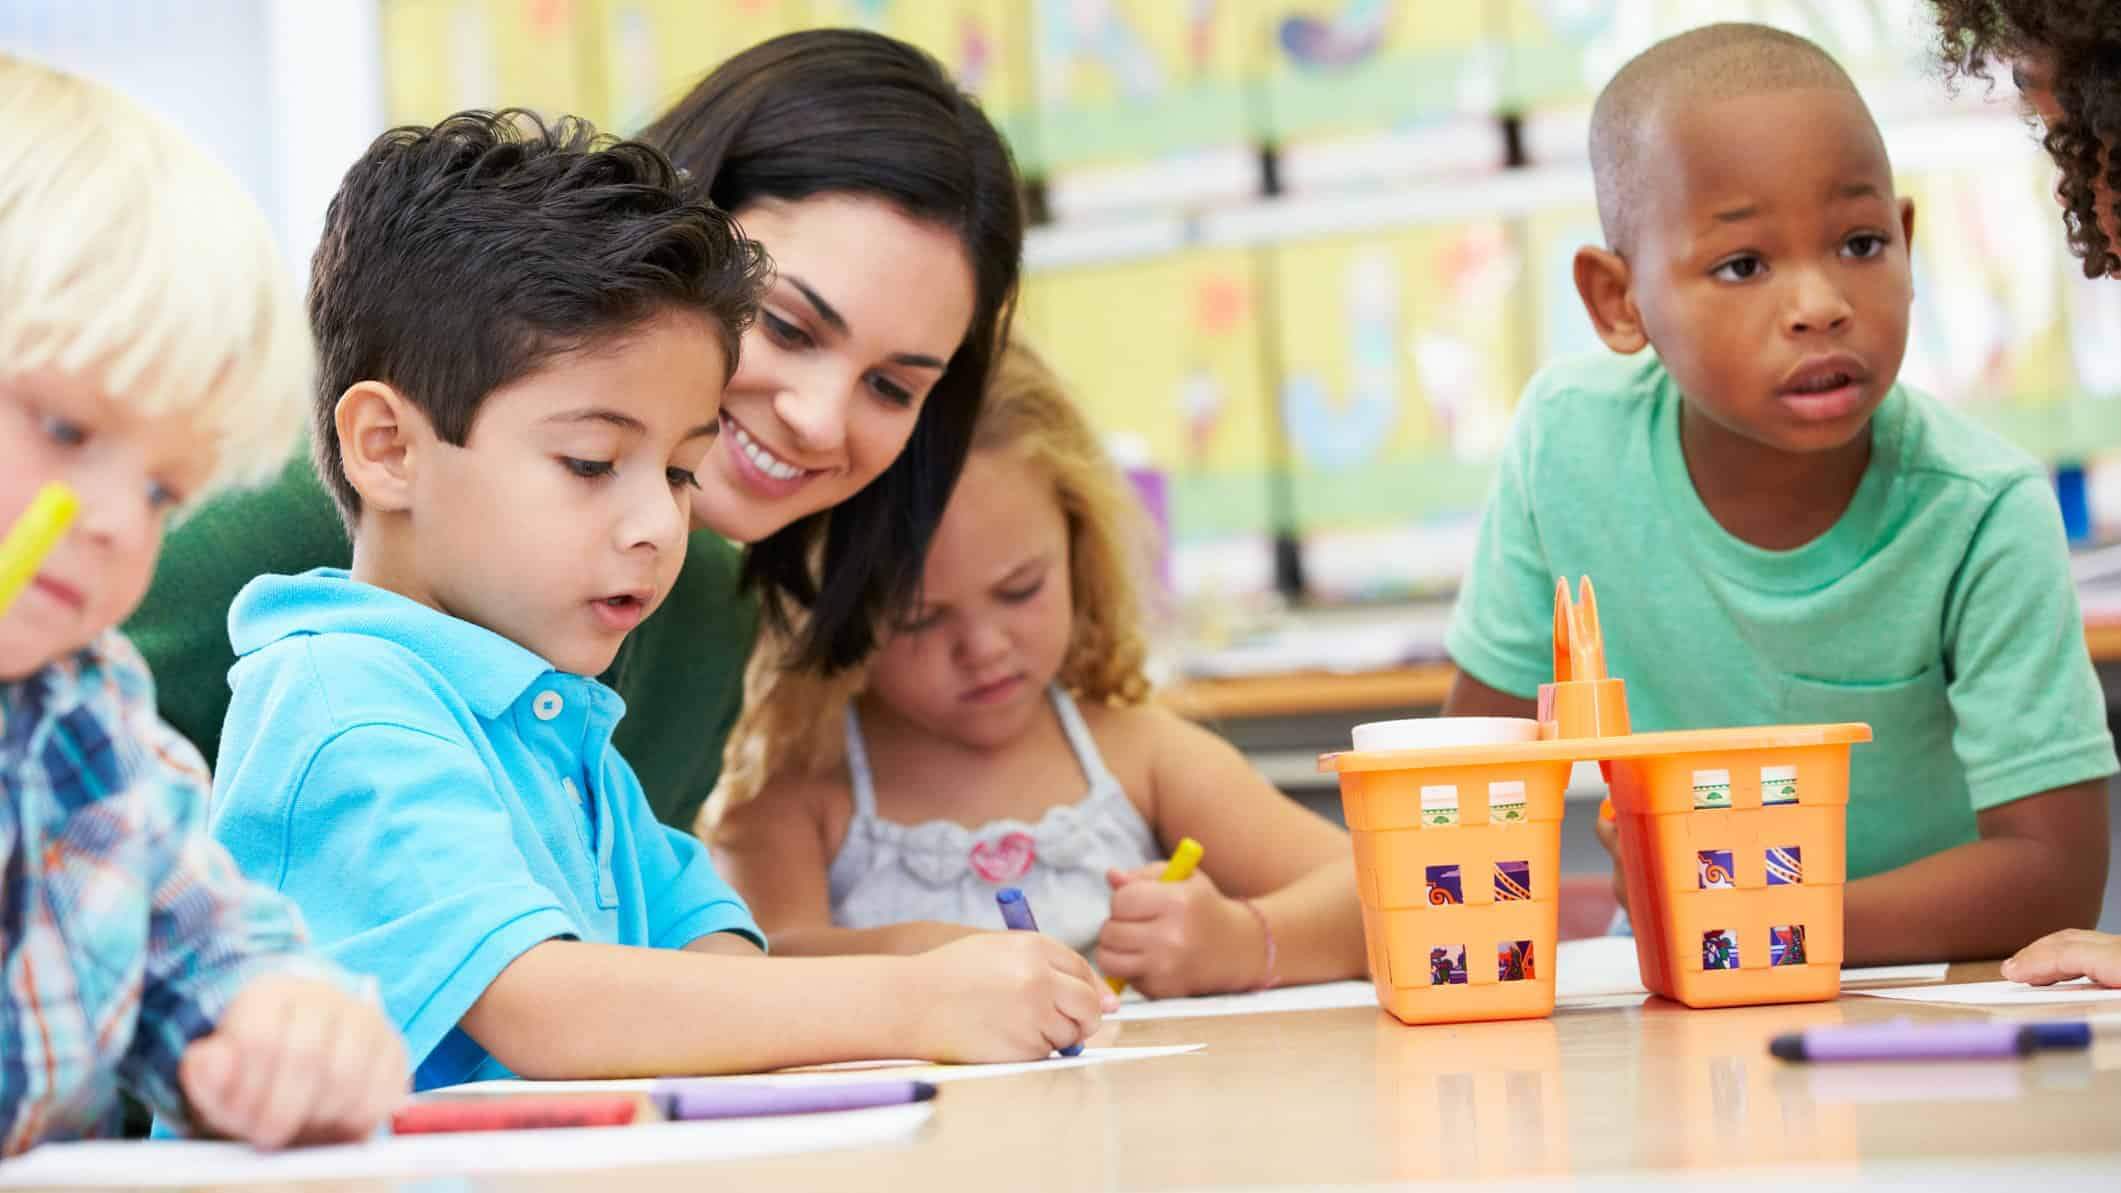 child care professional Find out what education and training you'll need to become a certified child care provider learn about the types of credentials and professional.